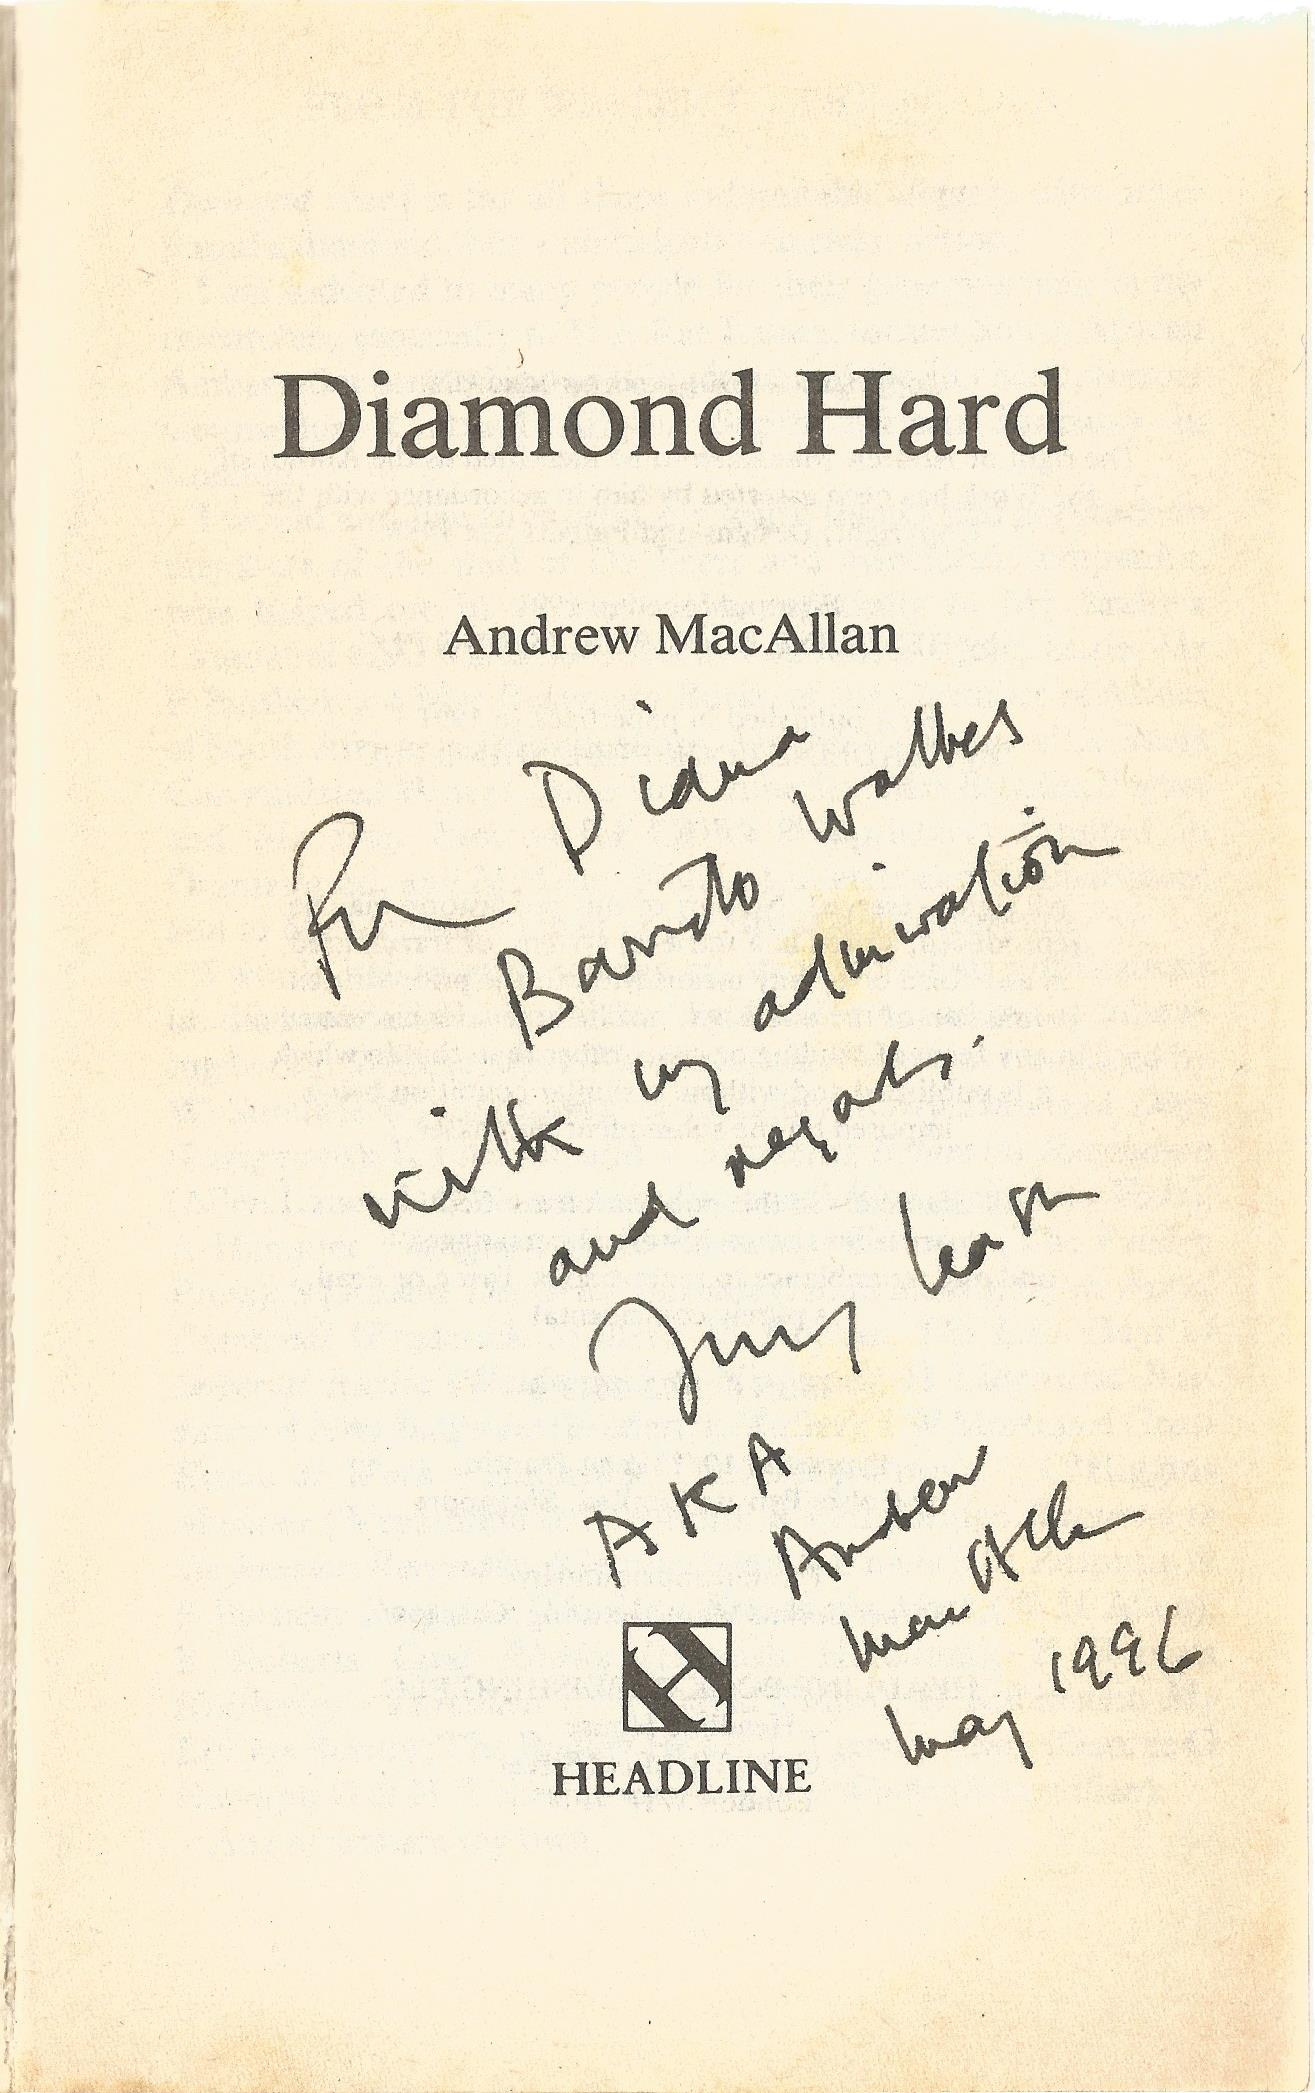 Andrew Macallan Paperback Book Diamond Hard signed by the Author on the Title Page and dated May - Image 2 of 2